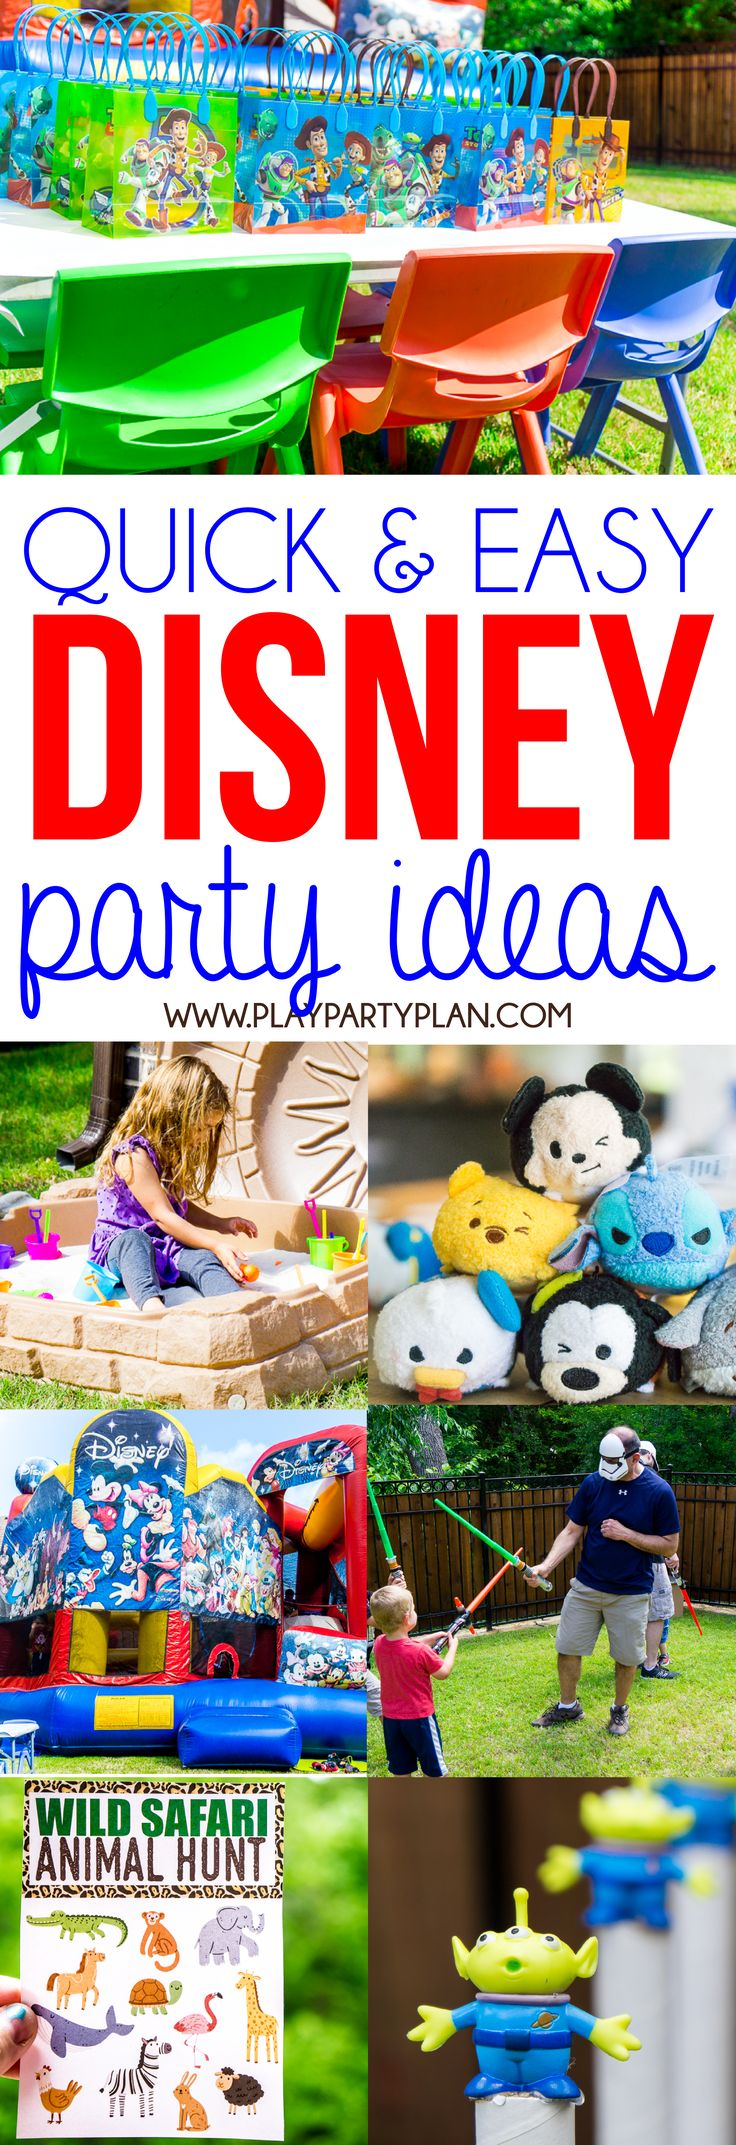 best crafts for kids images on pinterest easter eggs easter